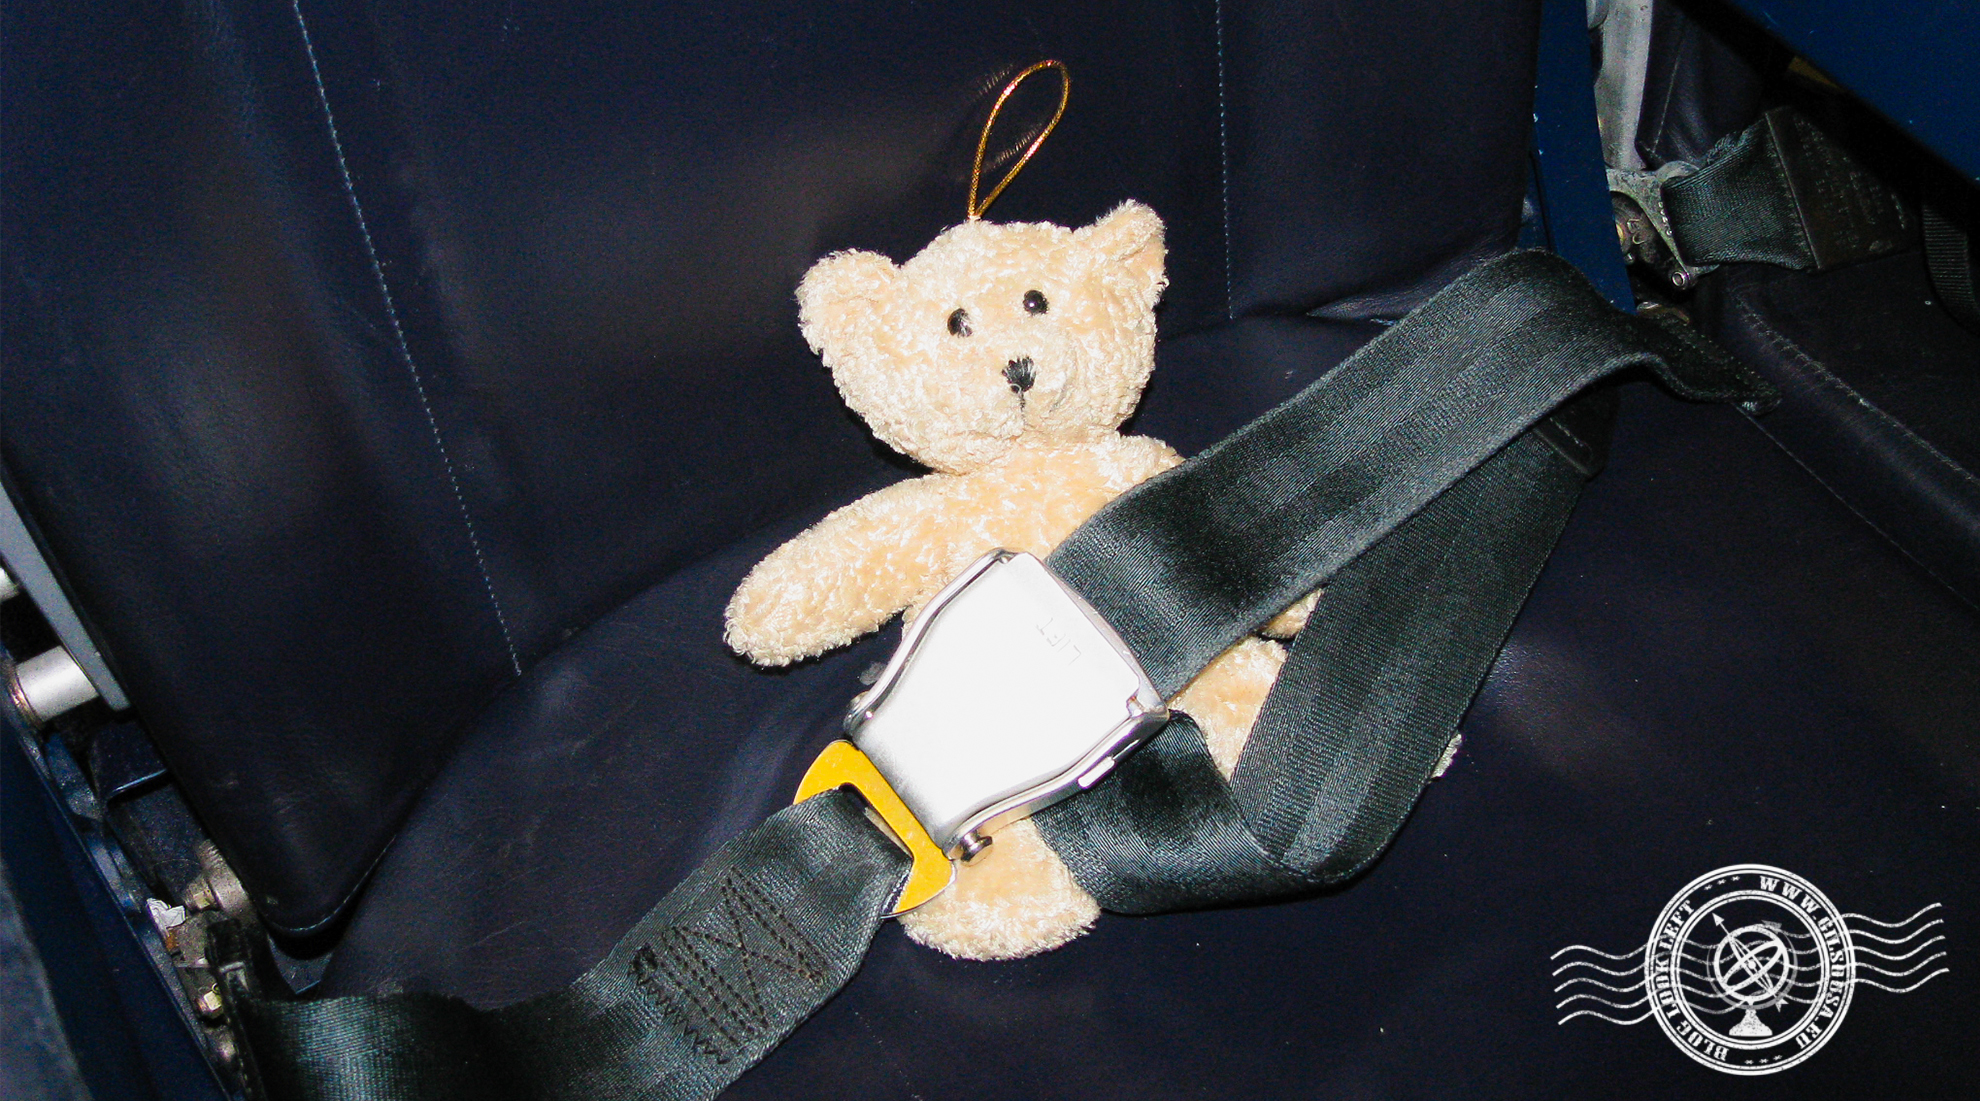 Teddy Bear ready for departure